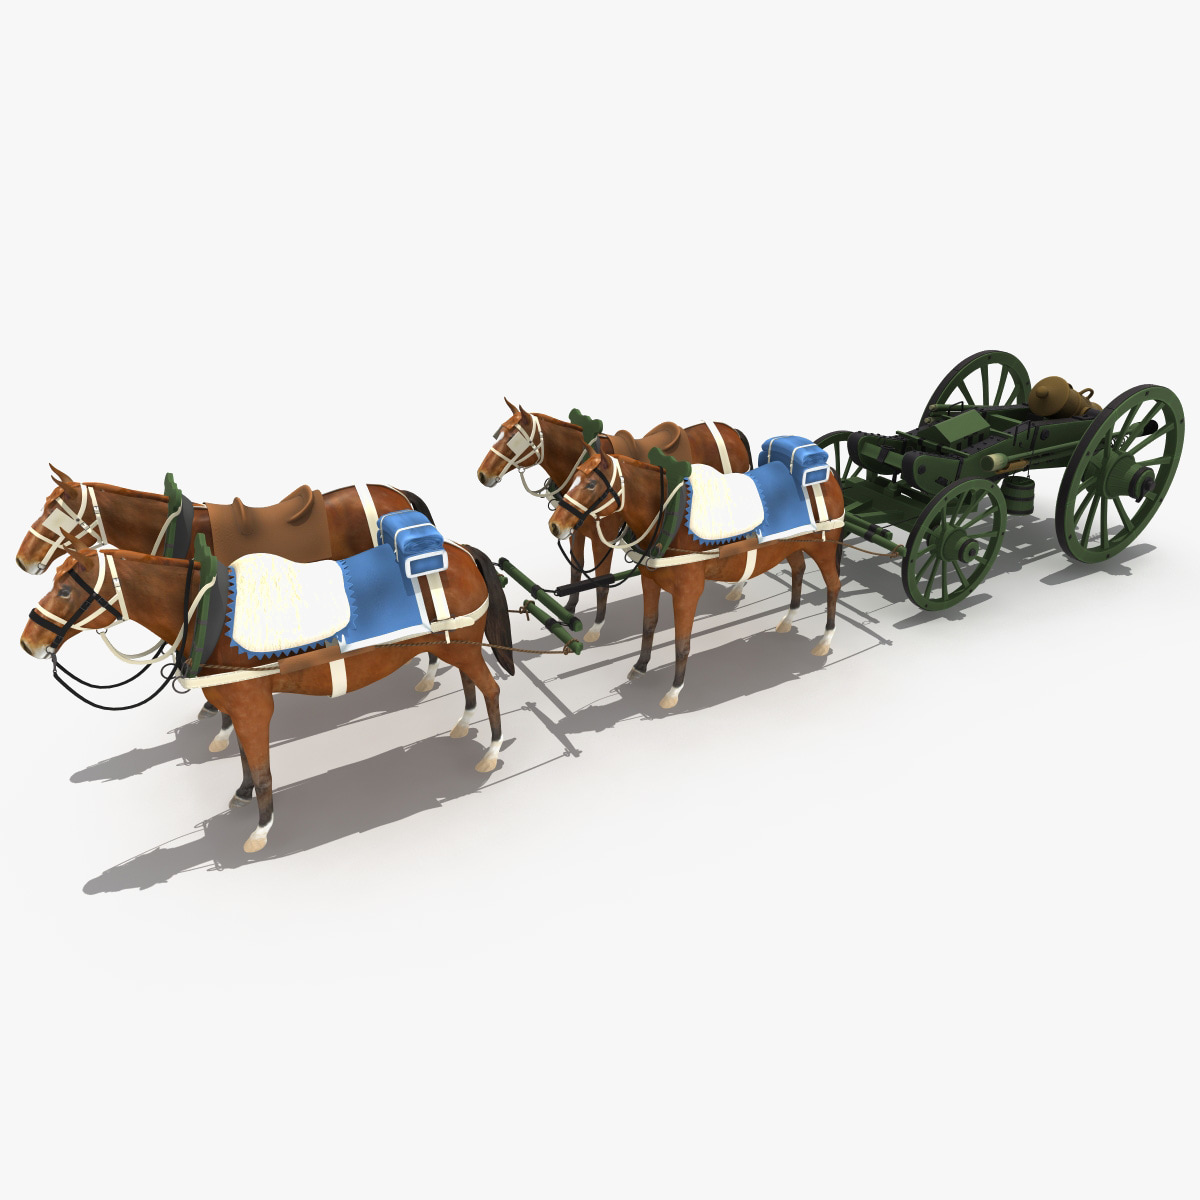 6-inch_Gribeauval_howitzer_with_limber_and_horses_000.jpg